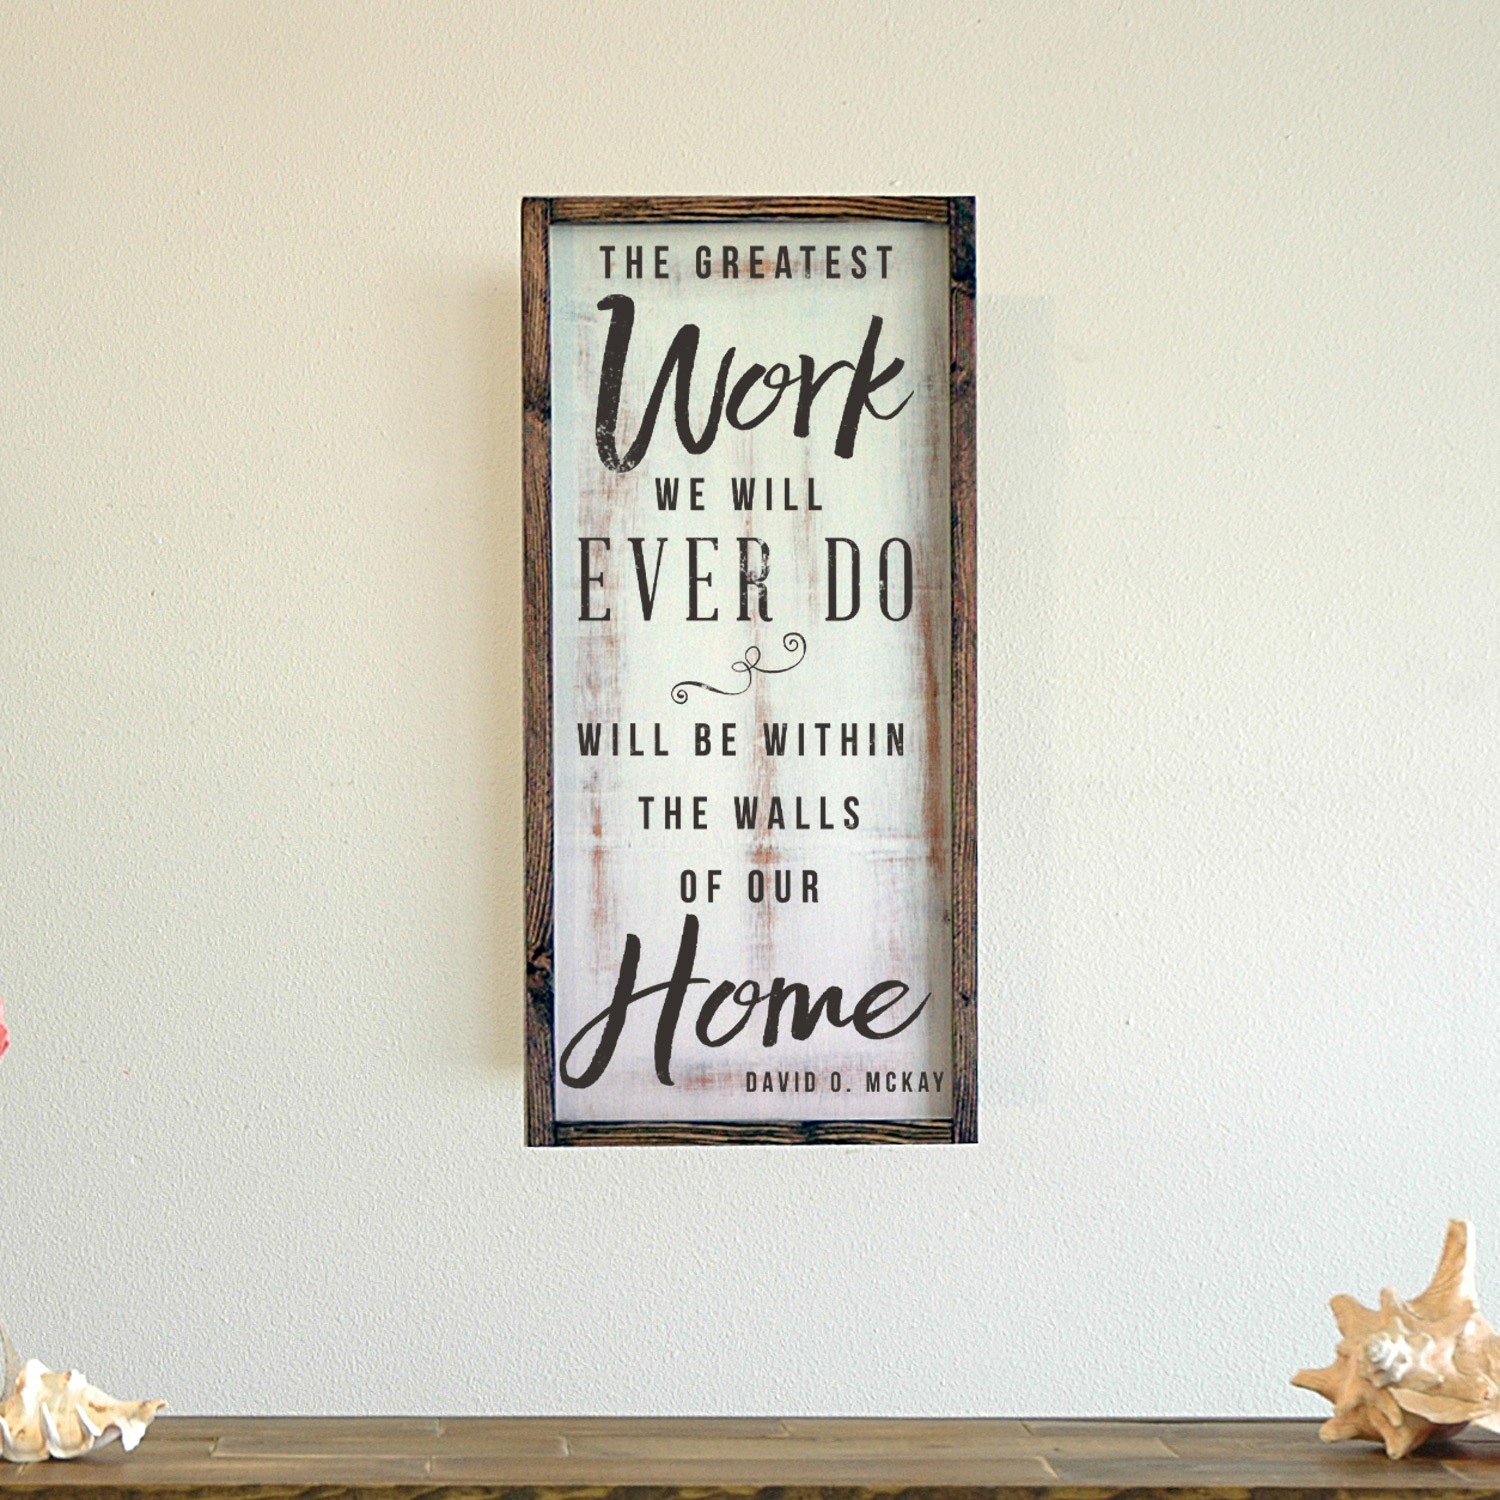 Wooden Wall Art Inspirational Quotes : Wooden wall art quotes australia signs with